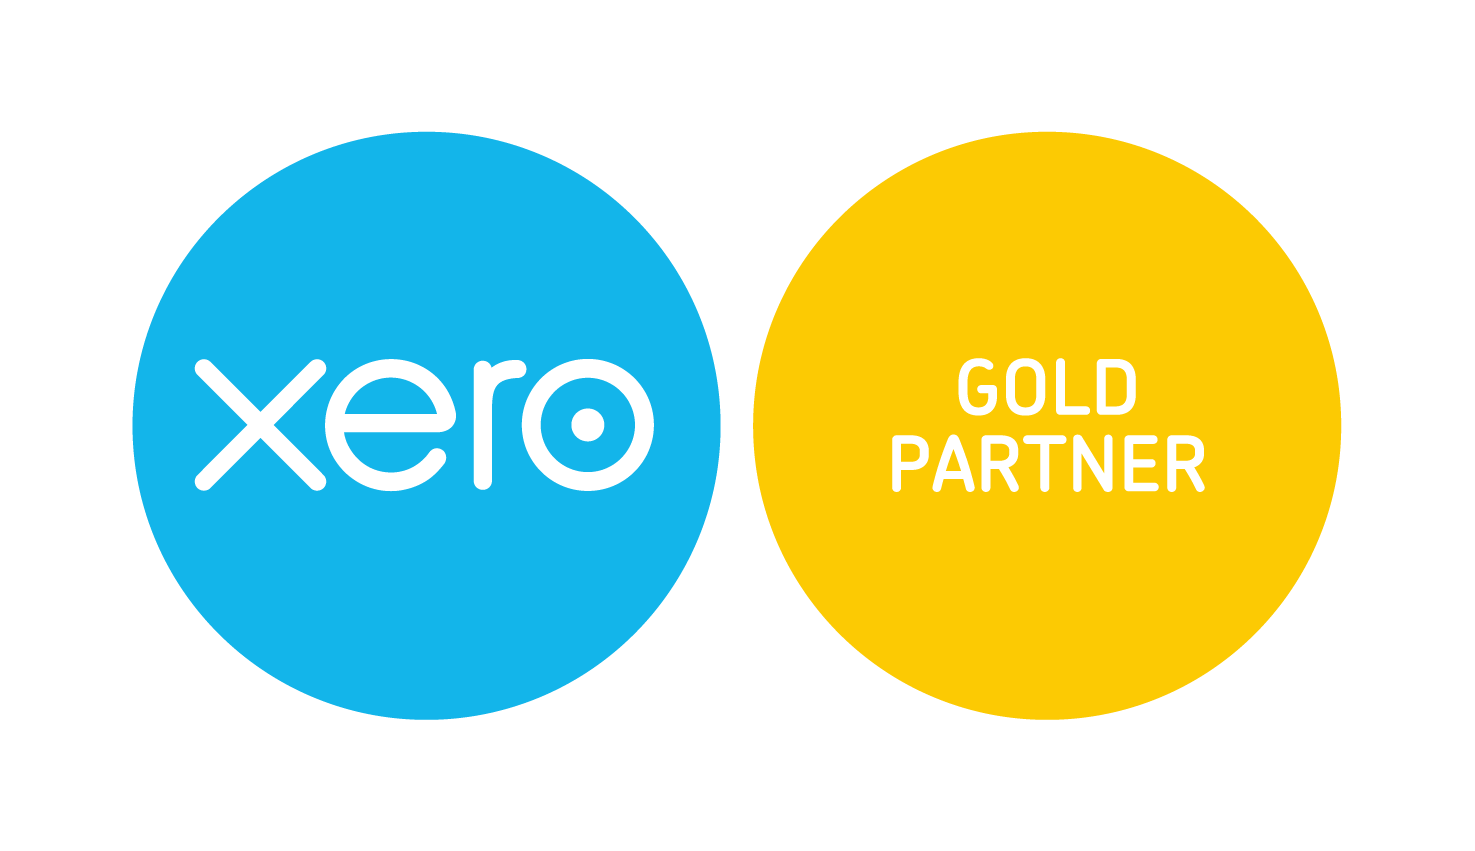 xero gold partner badge RGB